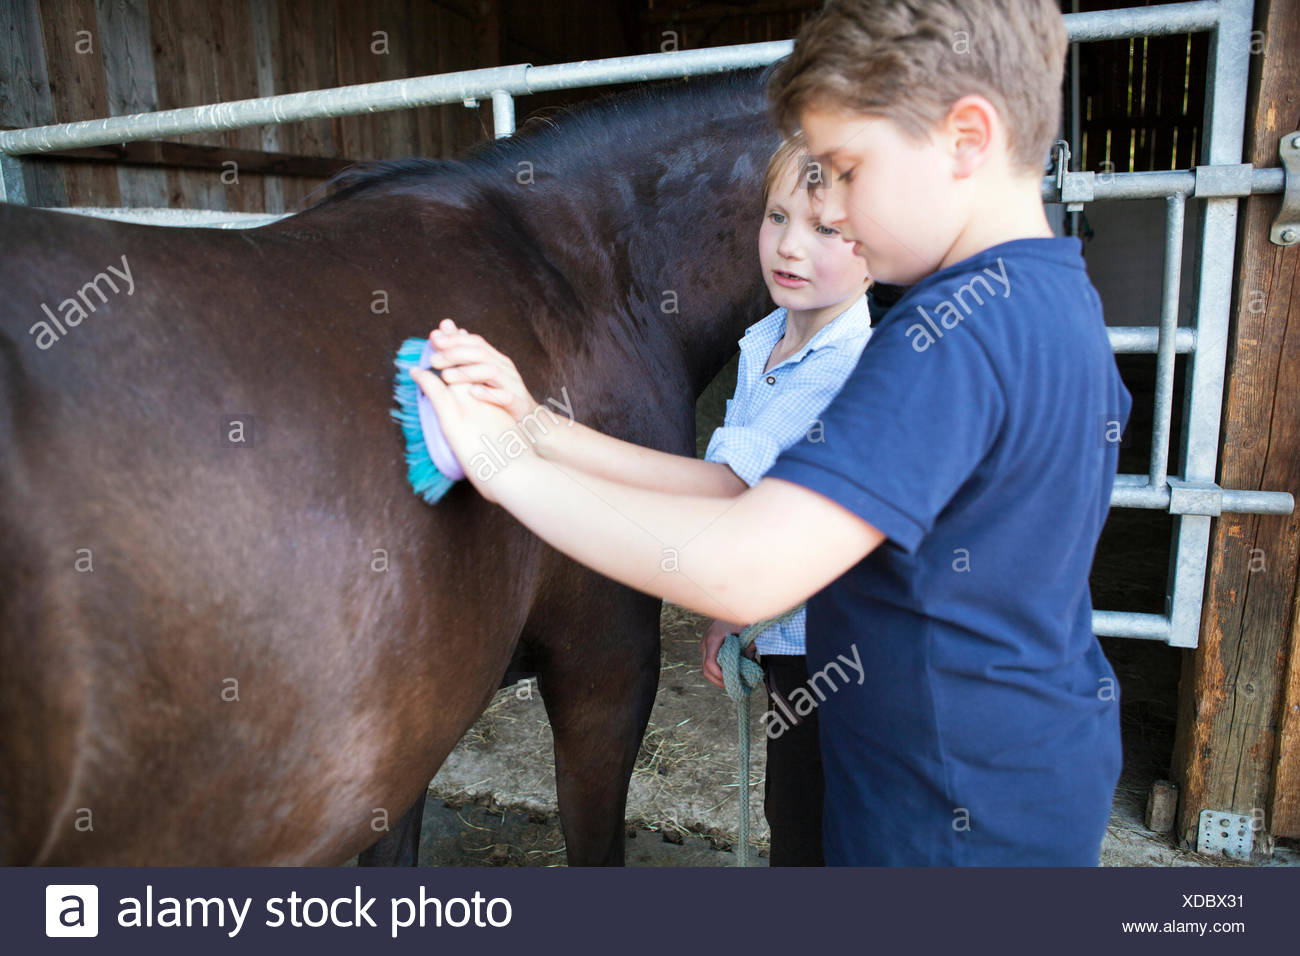 Two boys grooming horse in stable - Stock Image